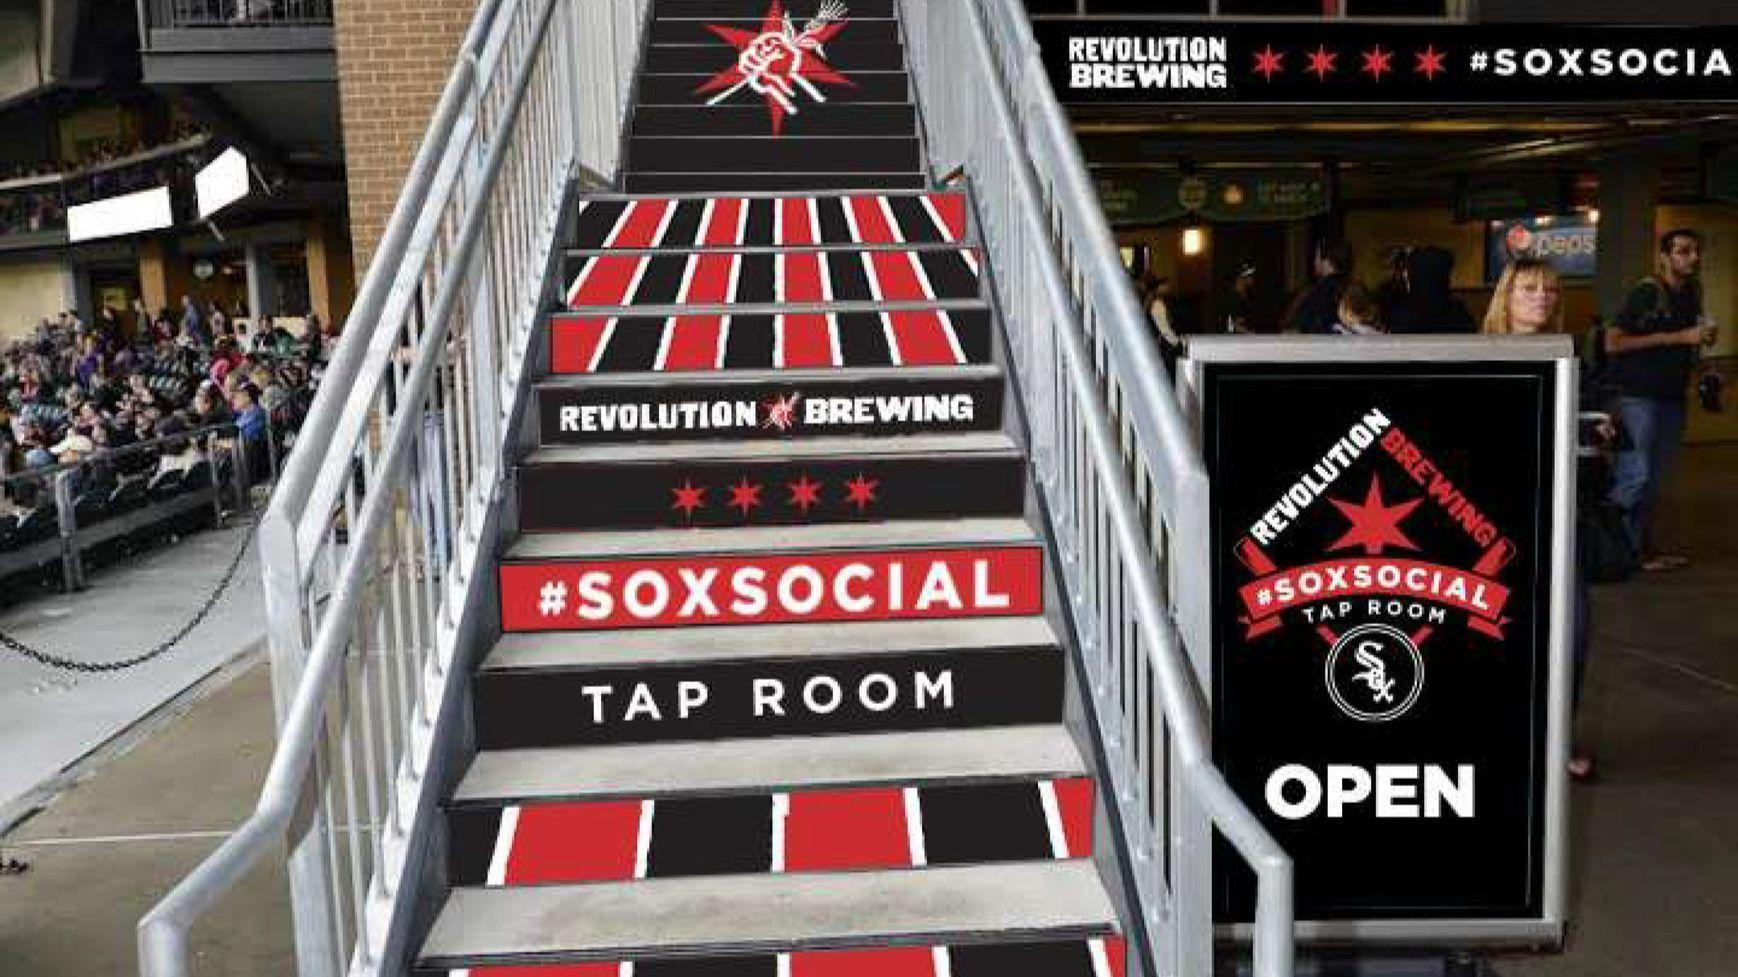 White Sox And Revolution Brewing Team Up For New Bar At